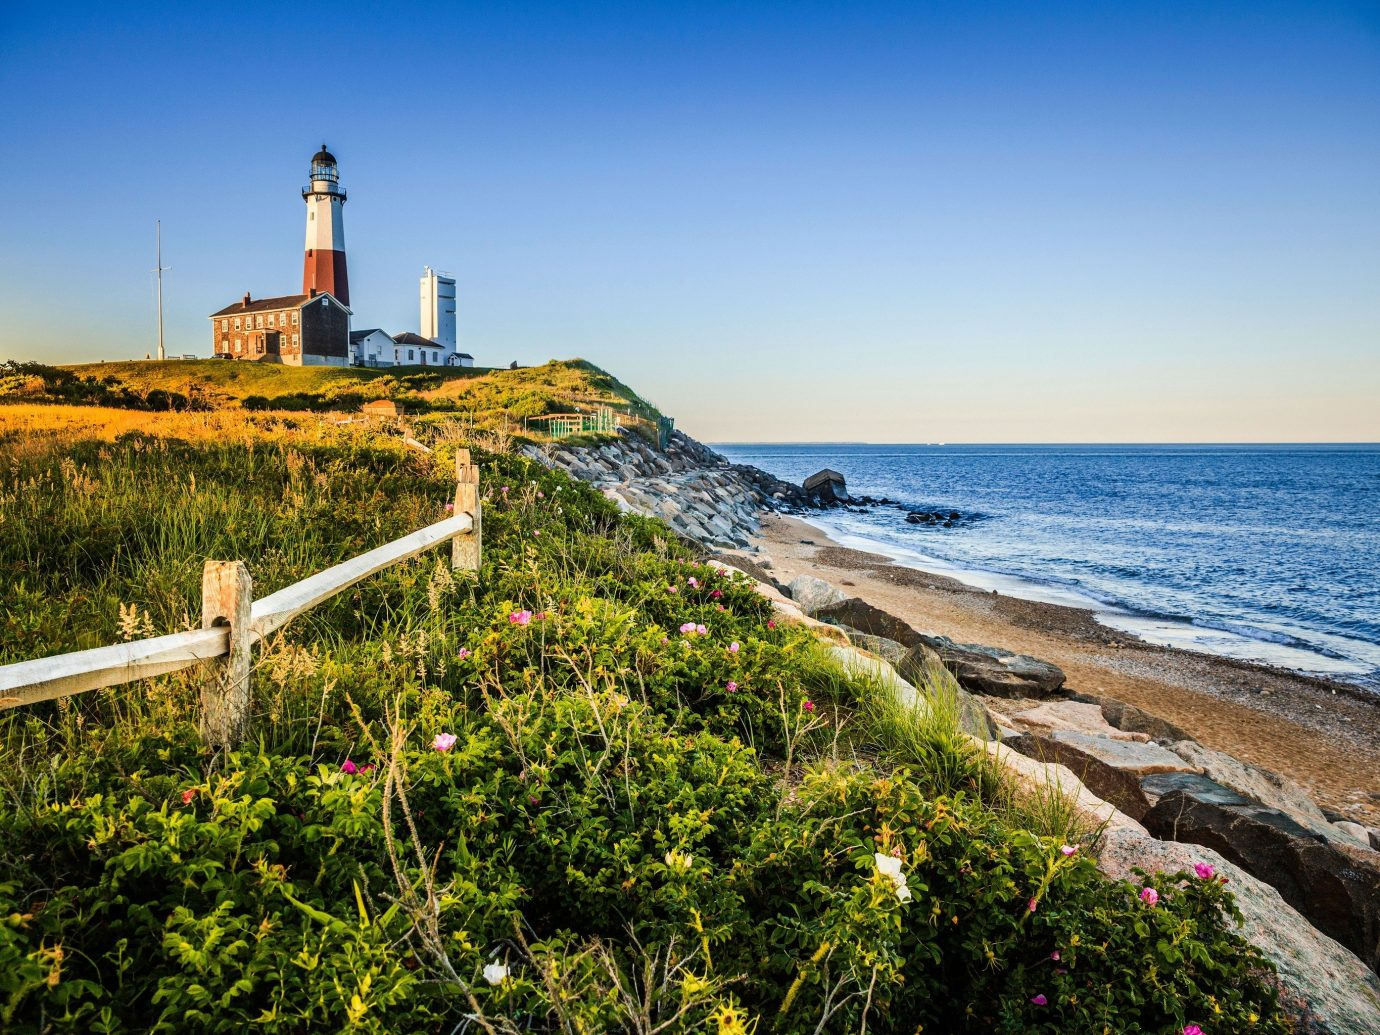 Trip Ideas sky outdoor grass water Coast tower shore Sea lighthouse Ocean horizon Beach vacation tourism cape bay landscape cove cliff terrain overlooking